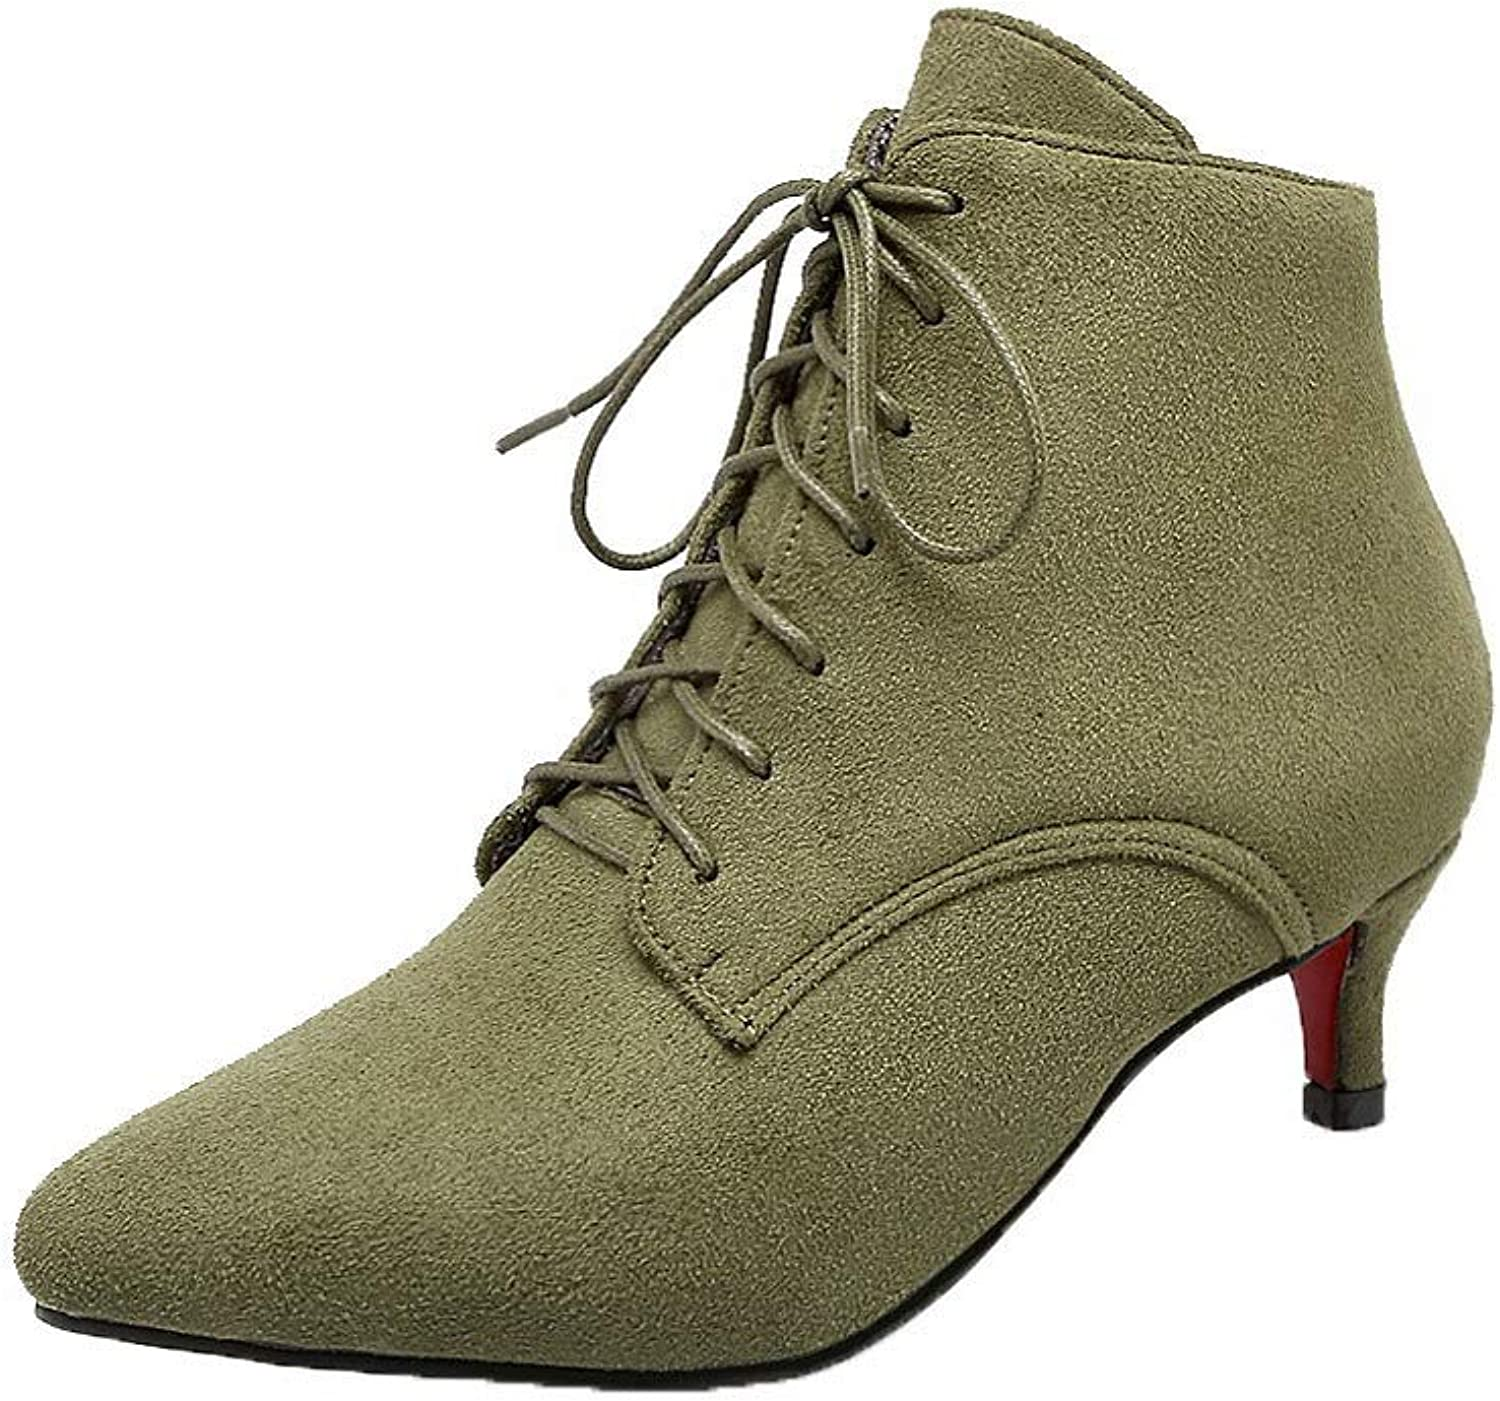 WeiPoot Women's Low-Top Solid Lace-Up Pointed-Toe Low-Heels Boots, EGHXH117033